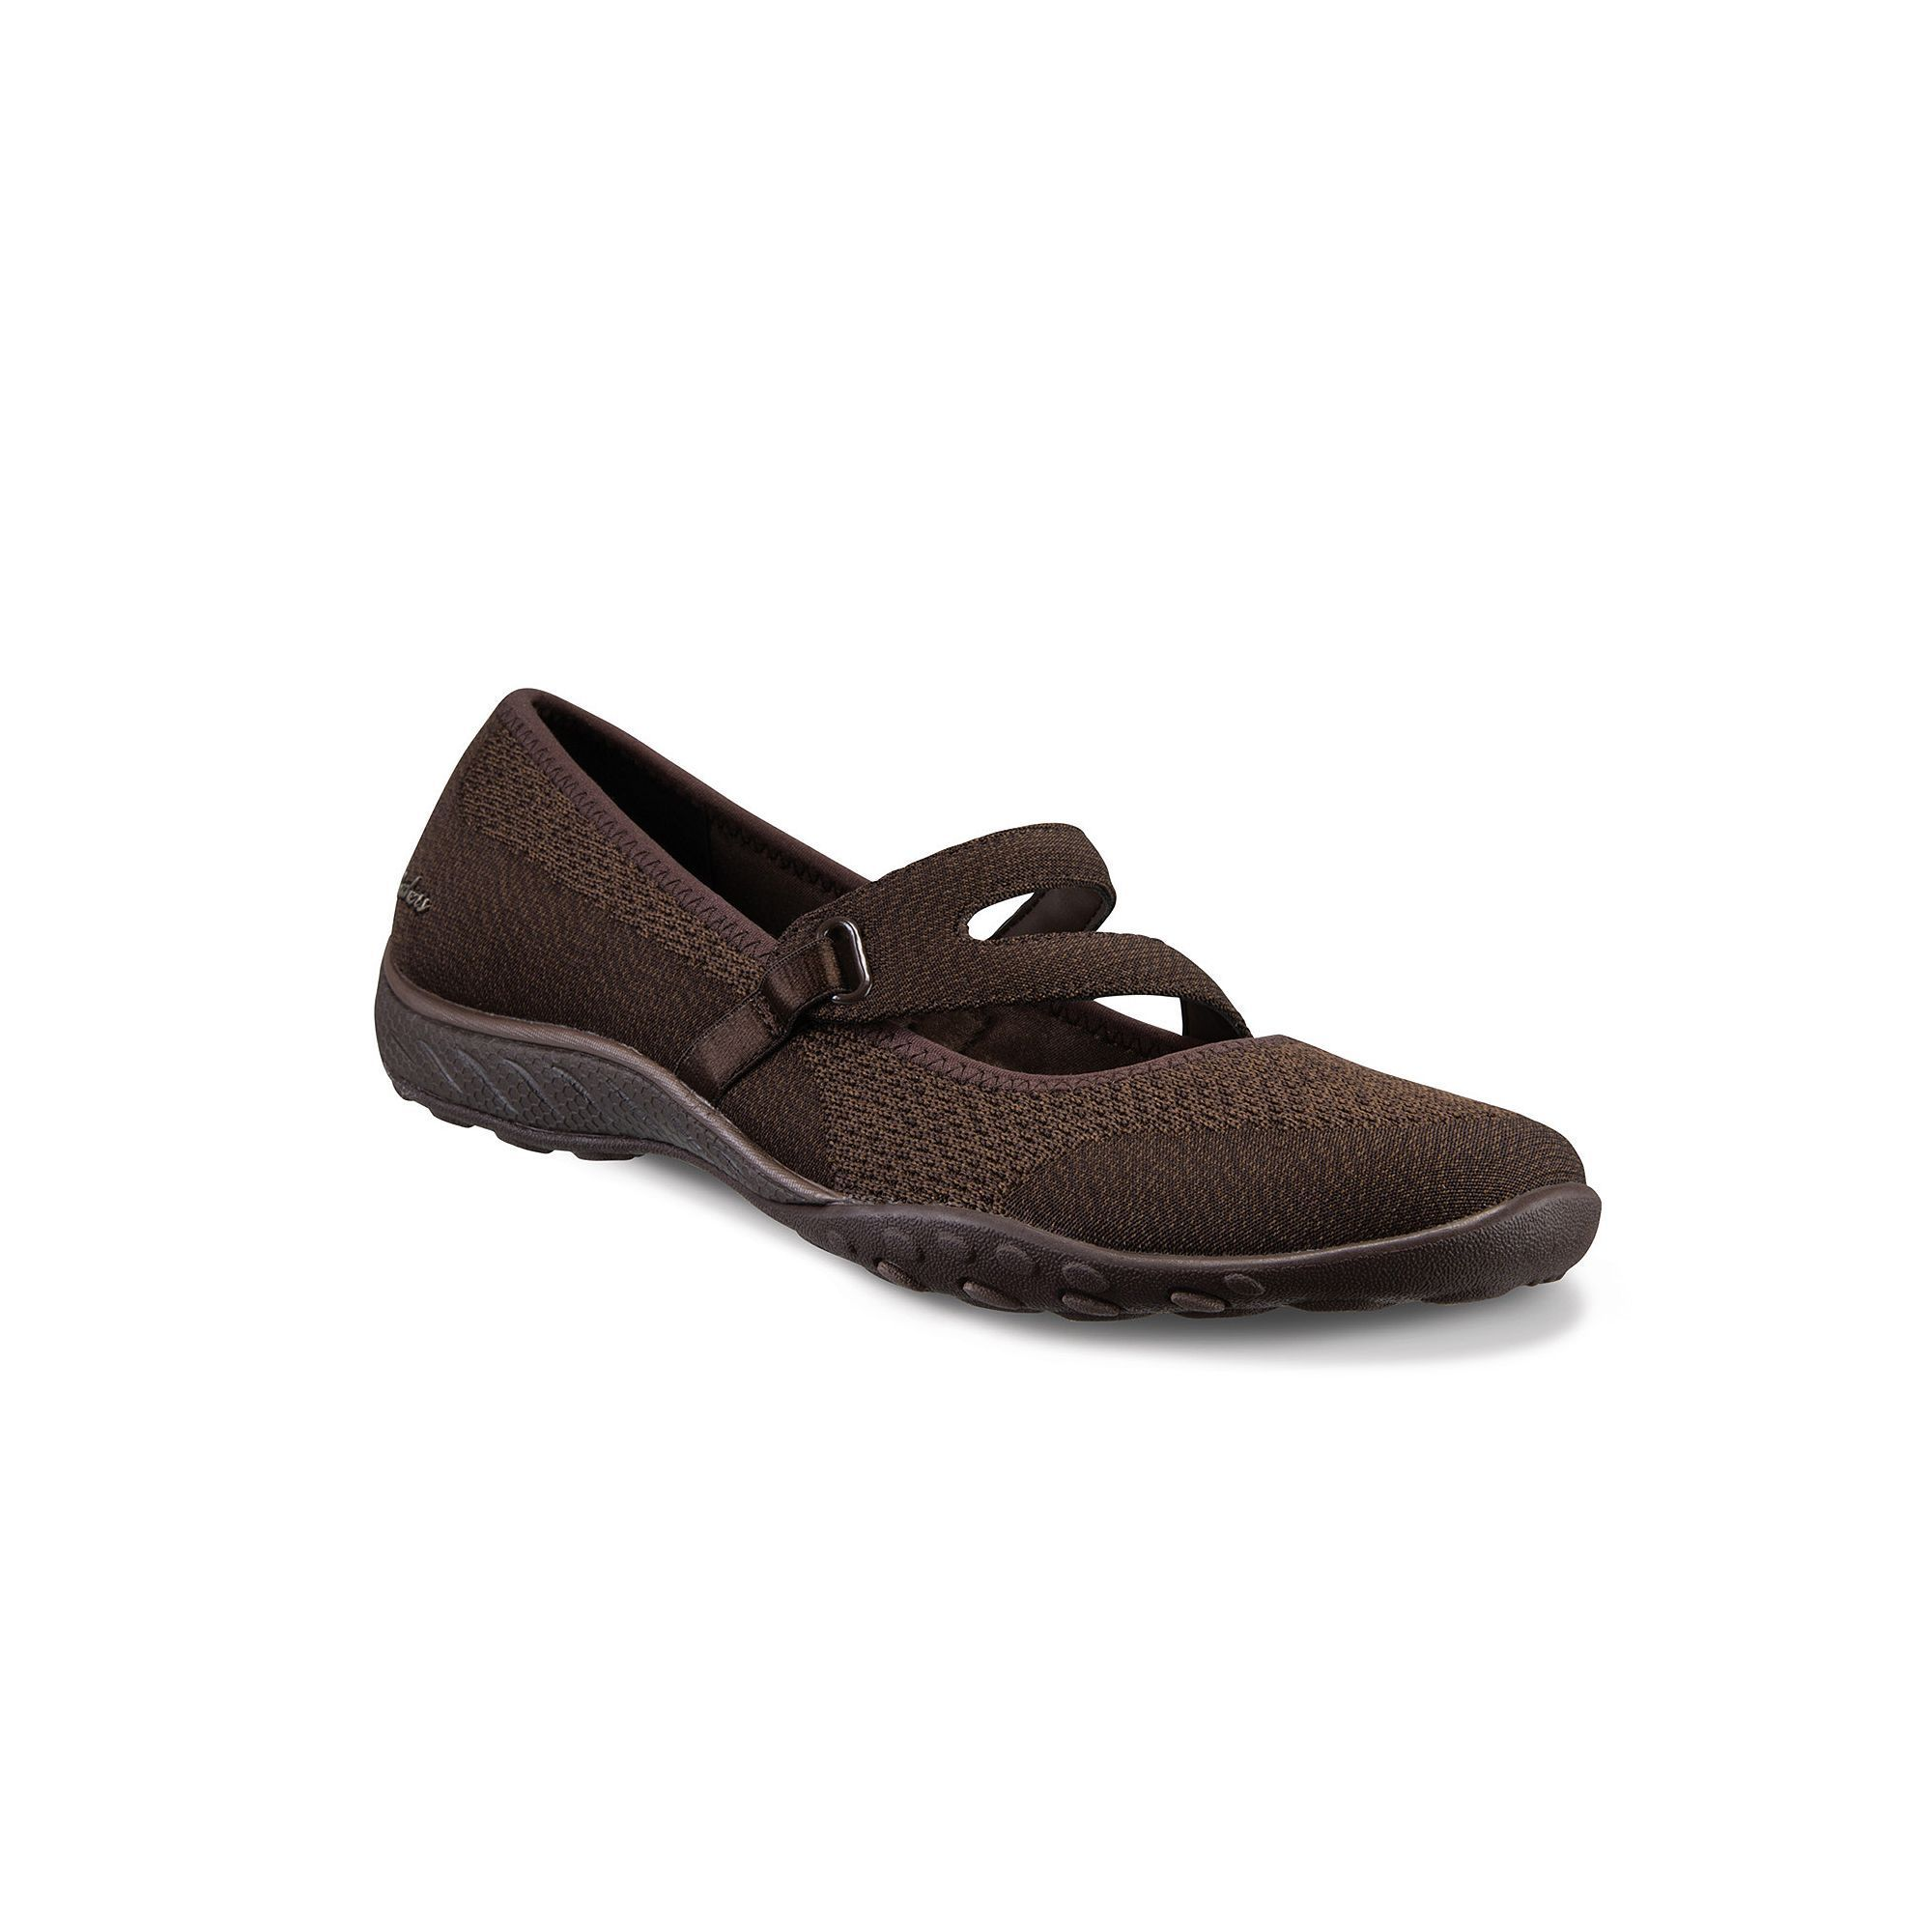 skechers brown womens shoes